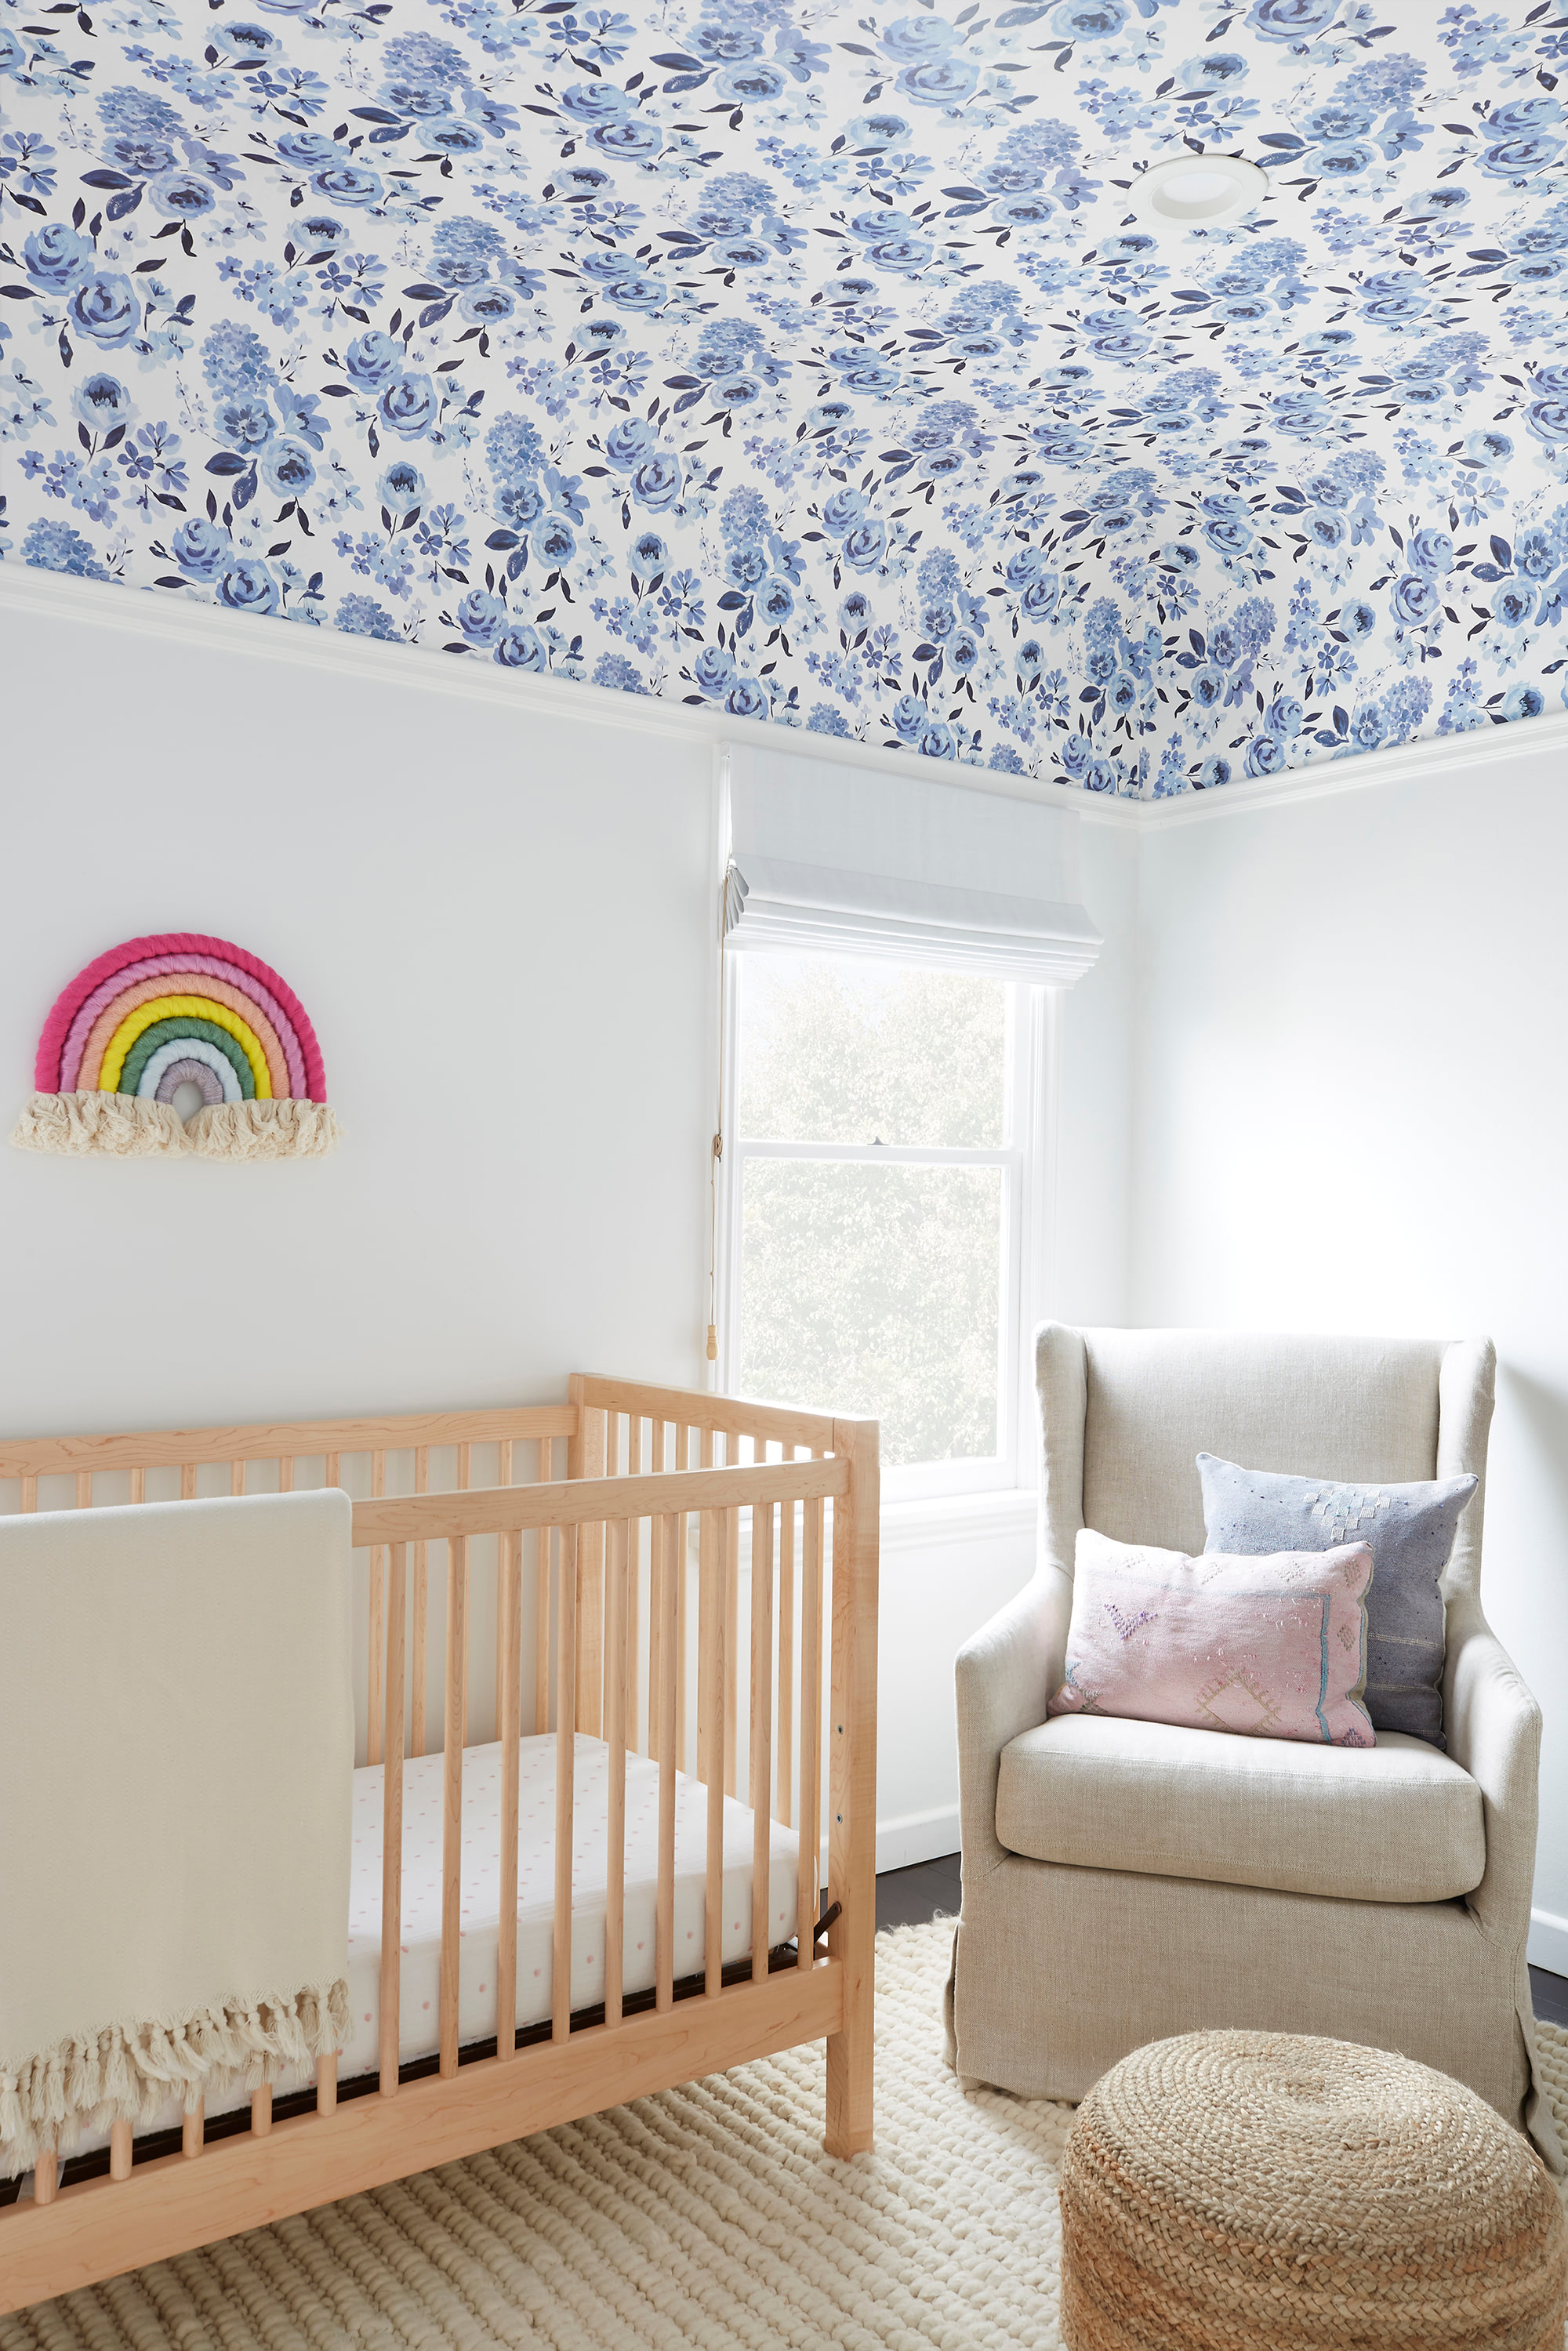 A white-walled nursery has white Roman shades to keep your focus on the blue floral ceiling paper.